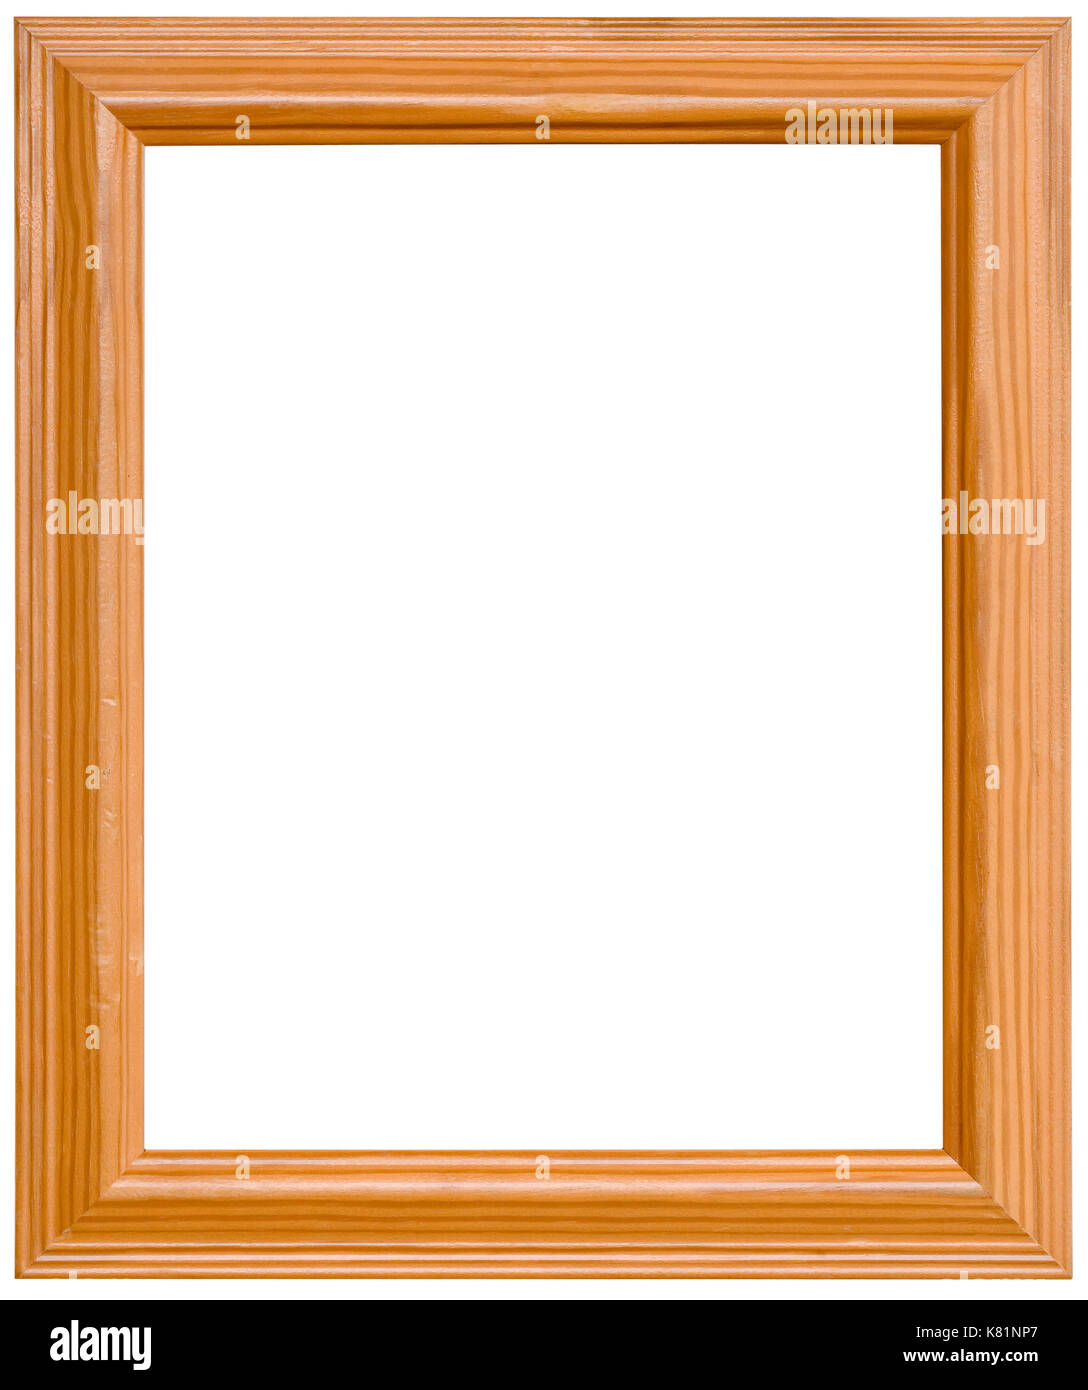 Simple Pine Wooden Picture Frame Cutout   Stock Image